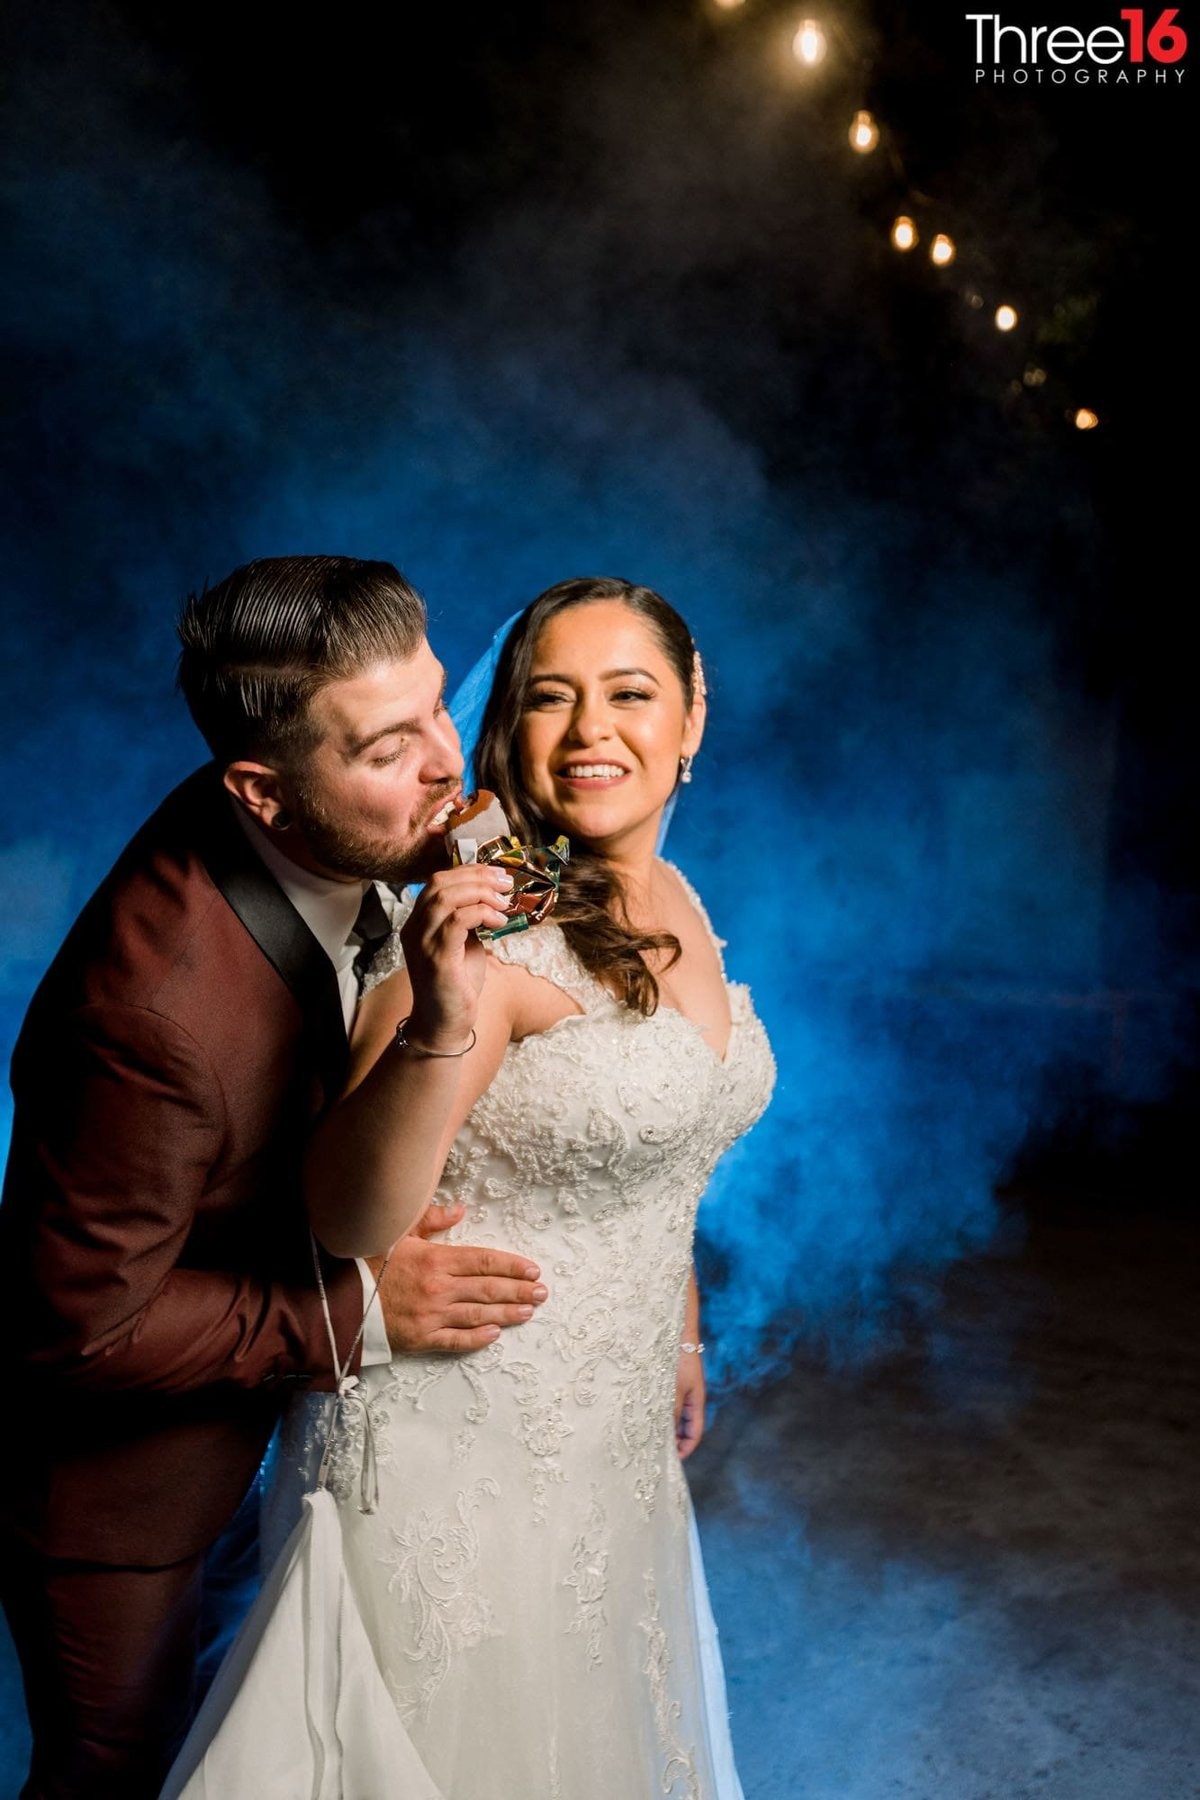 Orange County Wedding Photography Casa Bonita Event Center